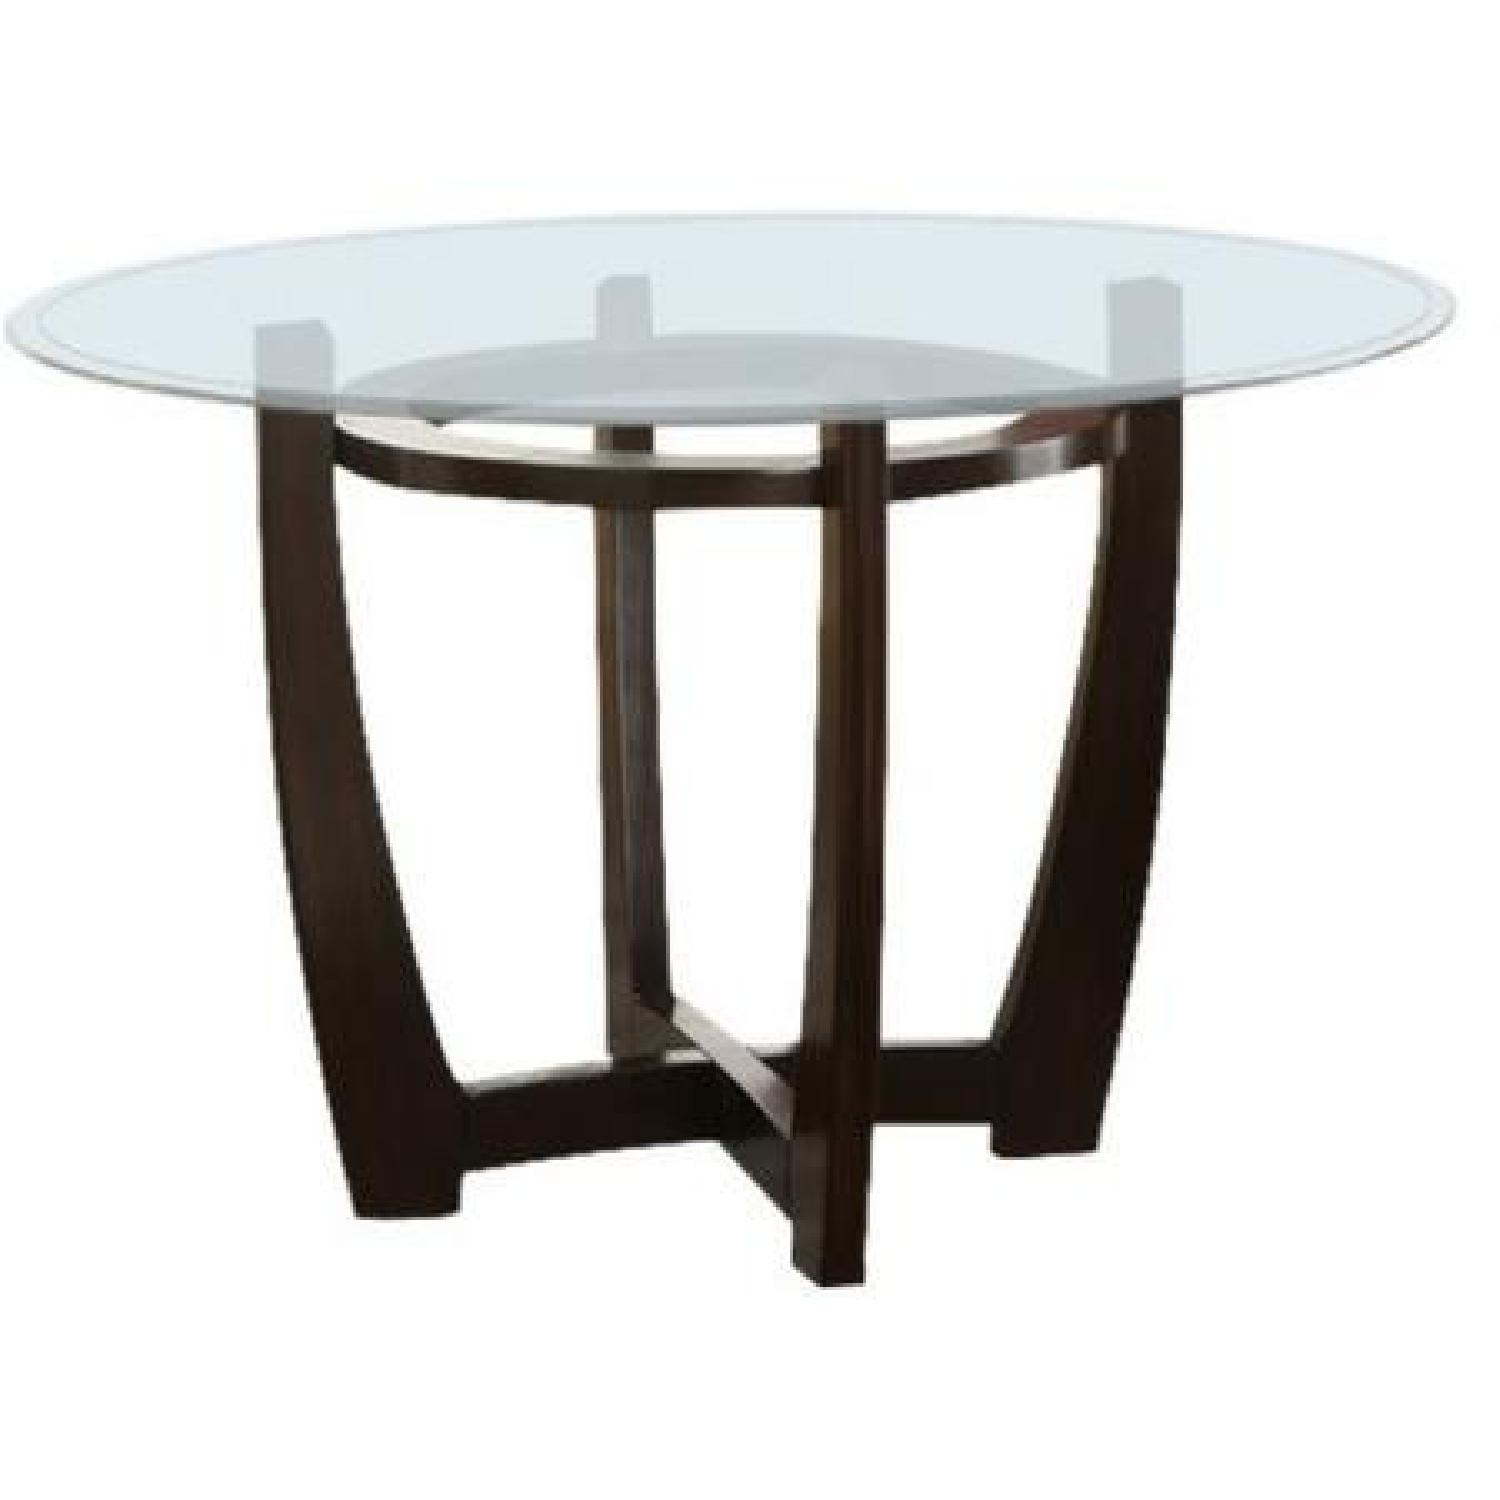 Coaster Round Glass Top Dining Table in Cappuccino Finish - image-0